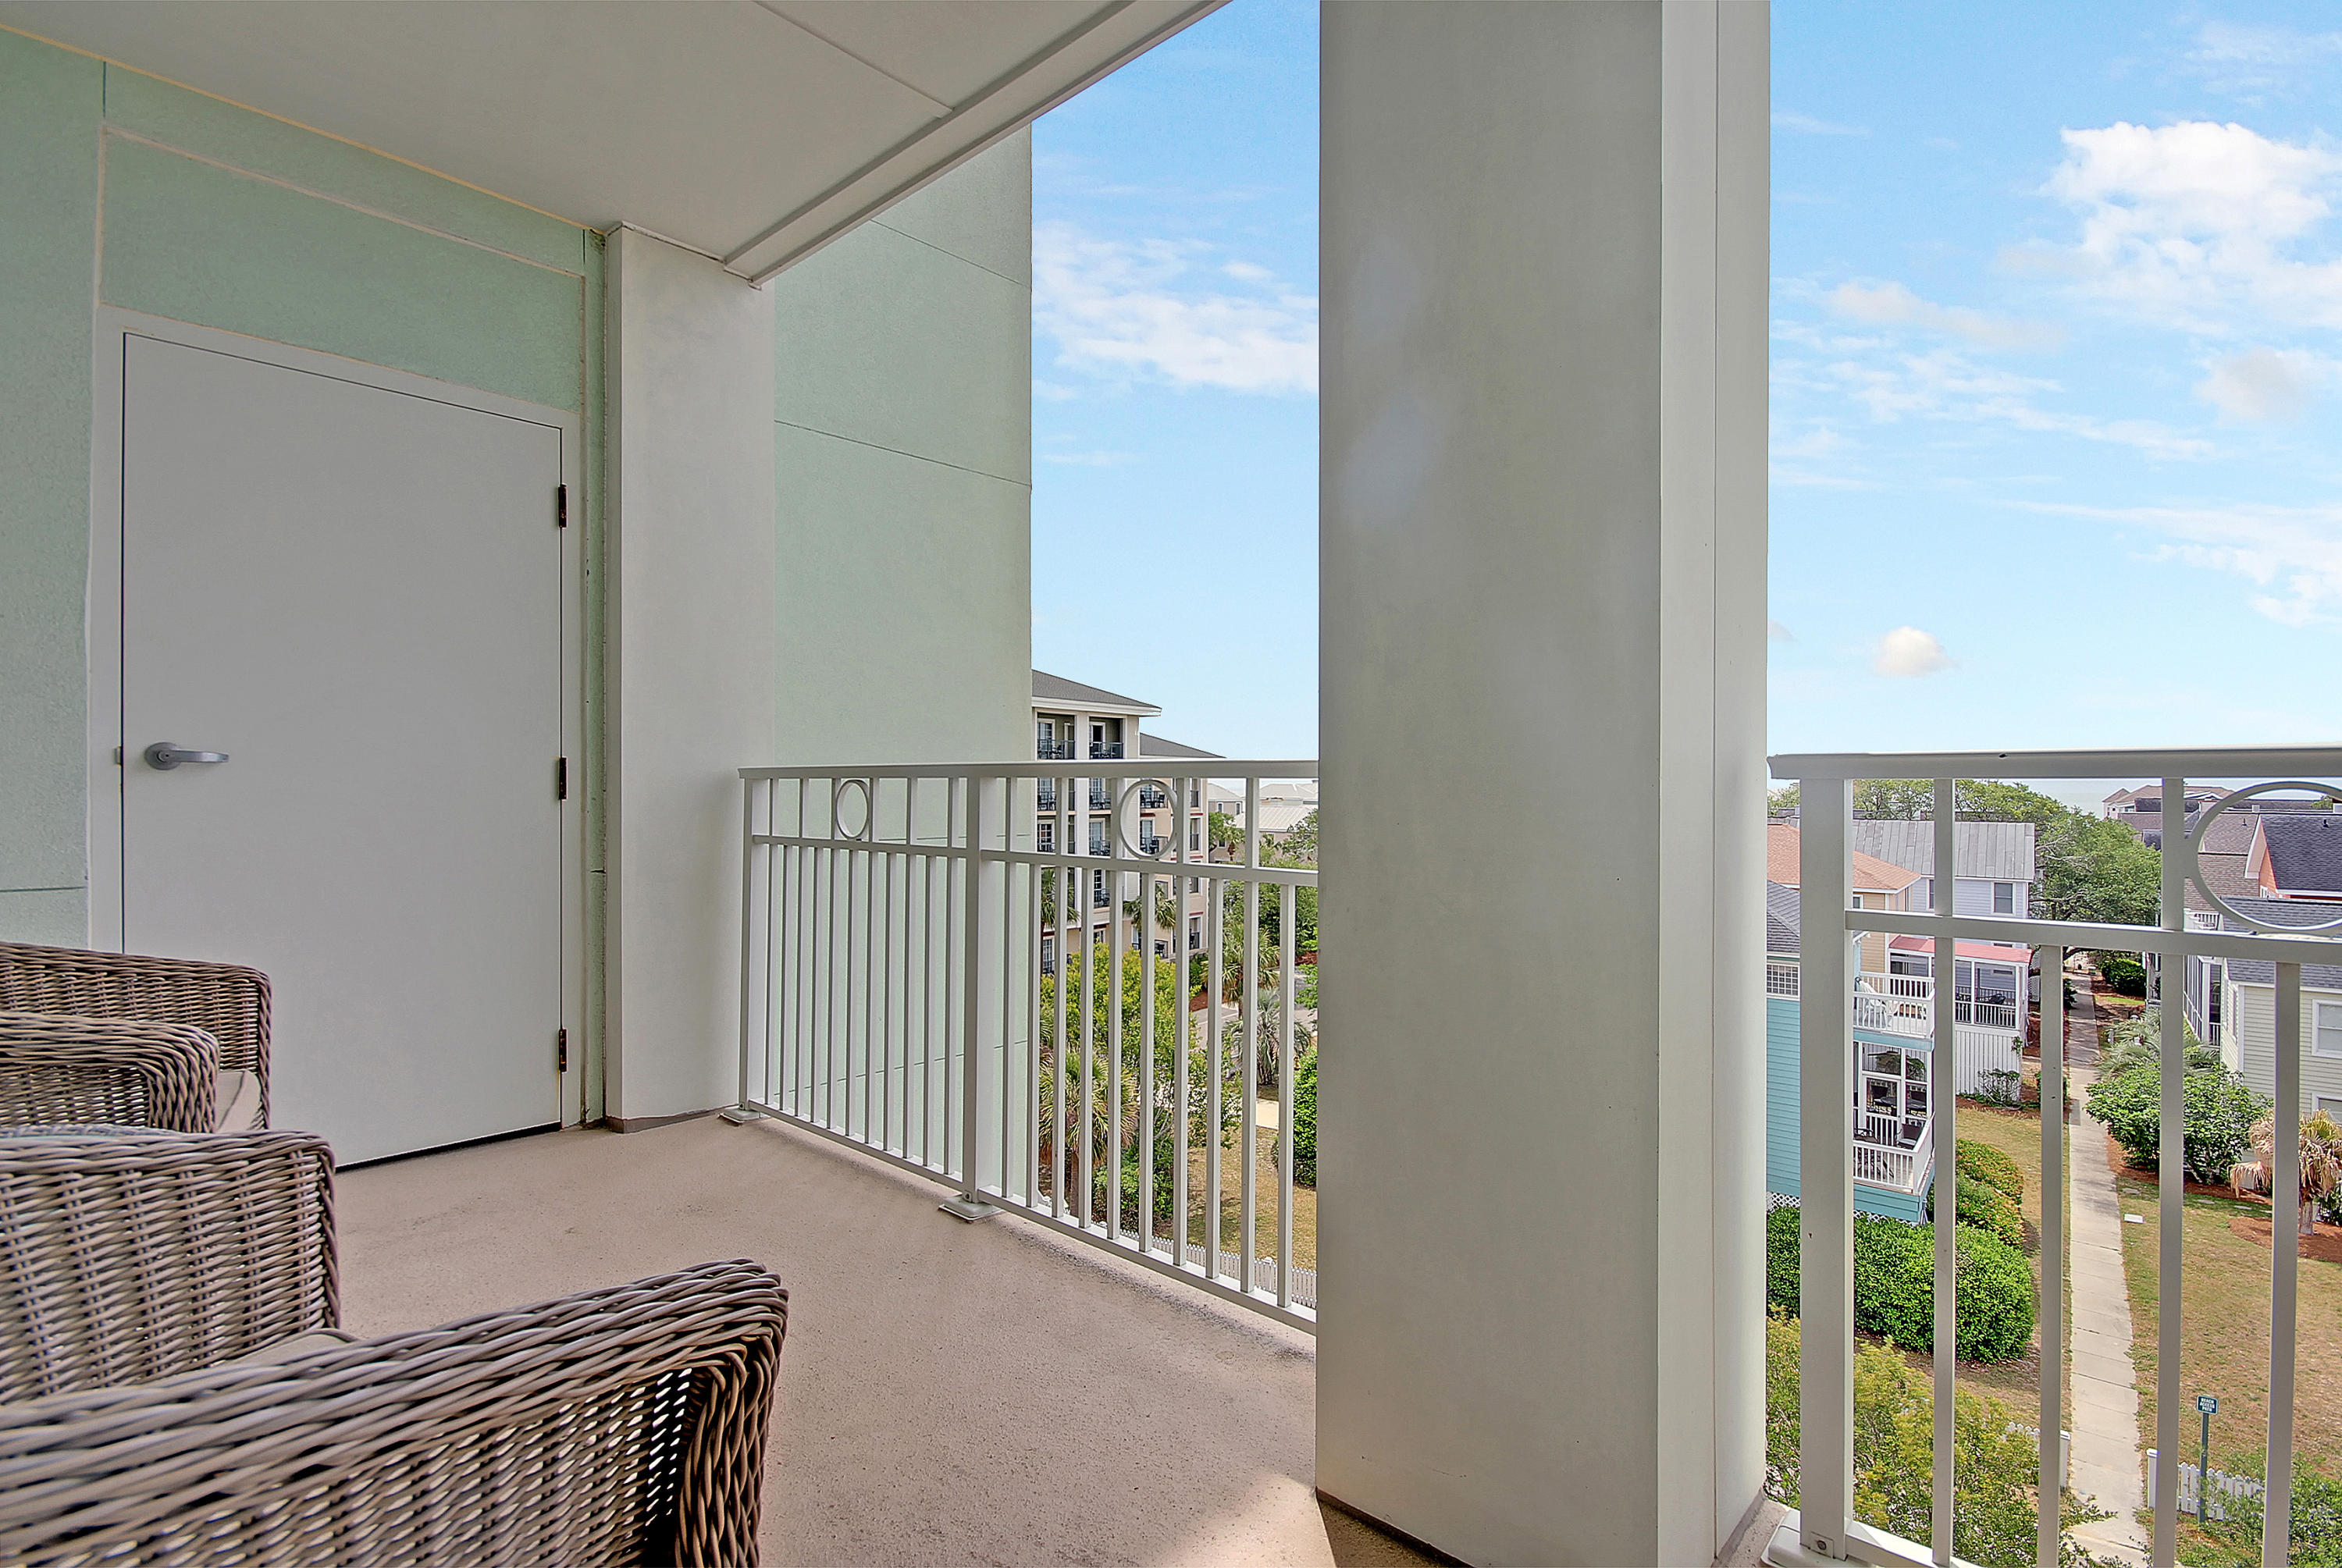 Wild Dunes Homes For Sale - 415/417-B The Village At Wild Dunes, Isle of Palms, SC - 20